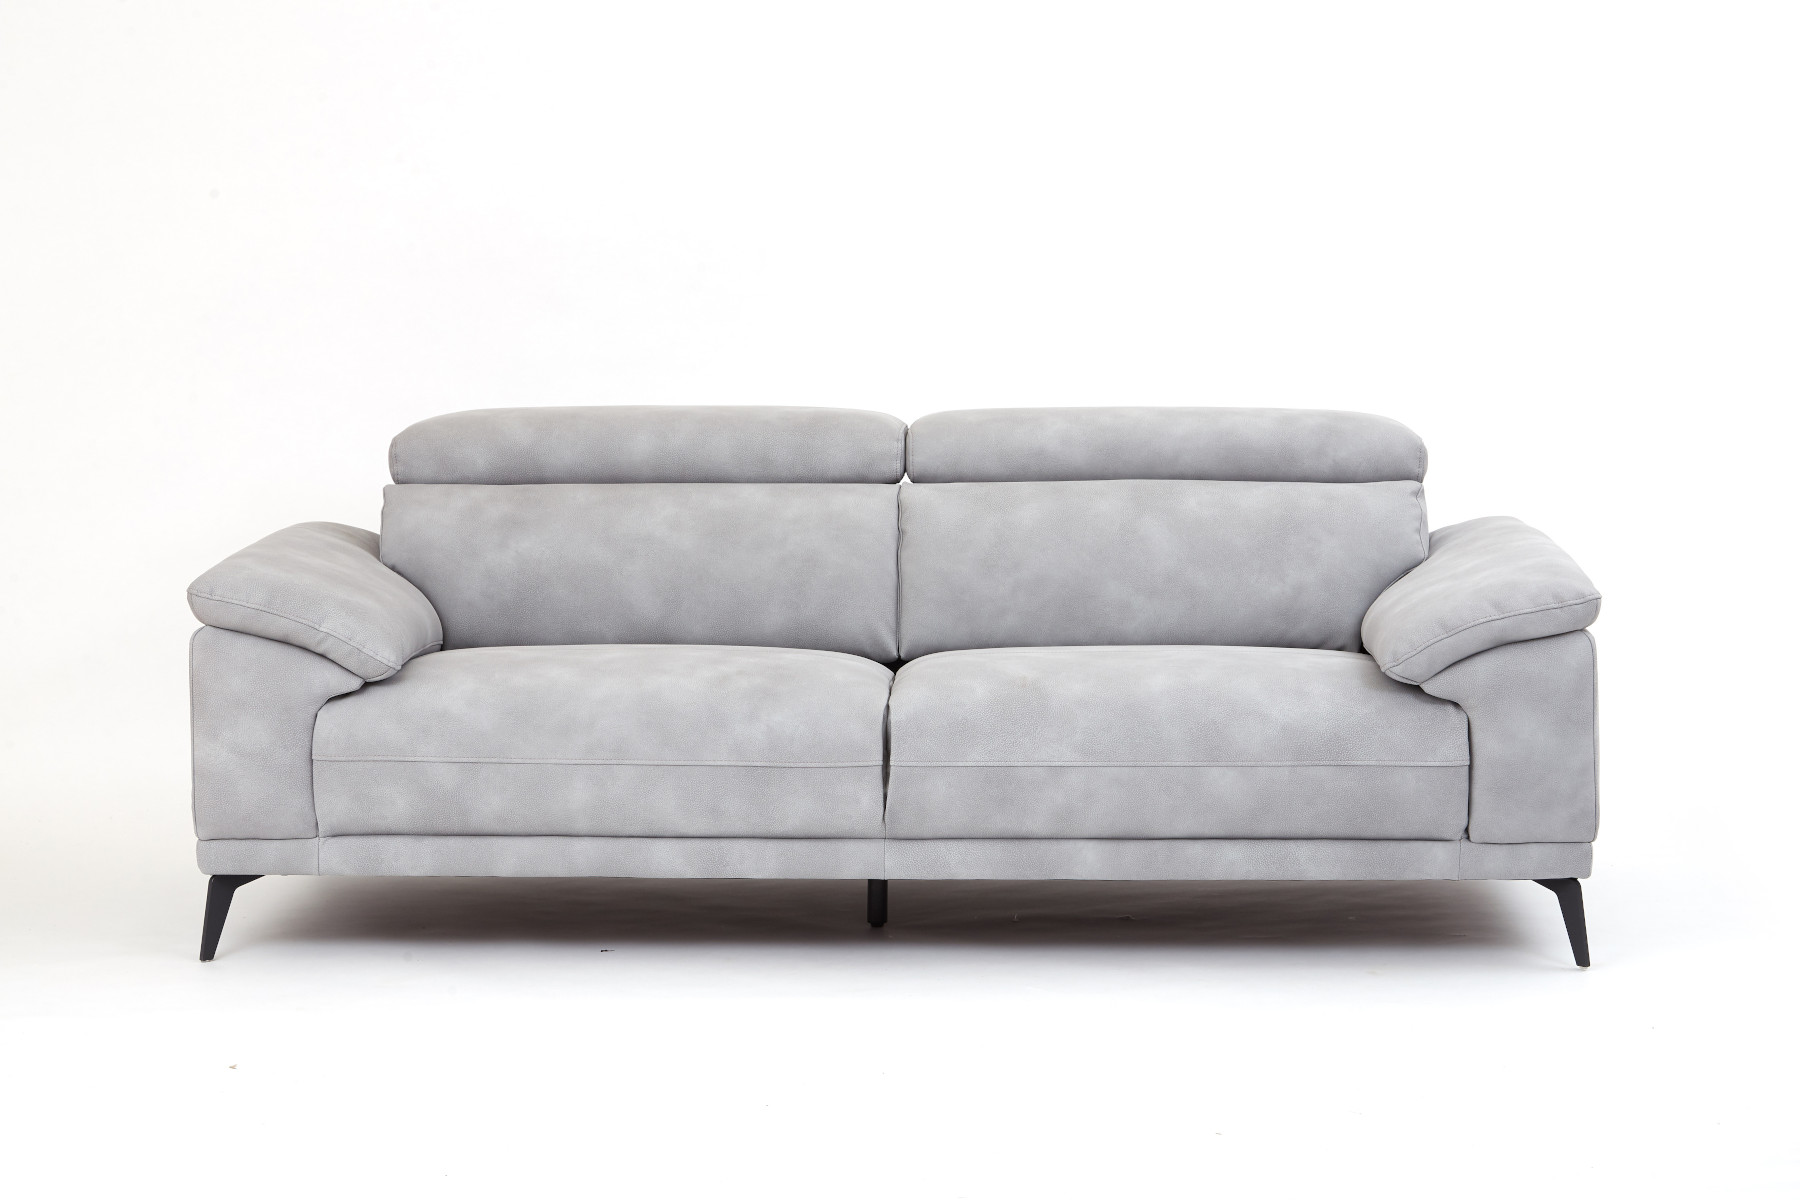 Montero 3 Seater Sofa - Grey